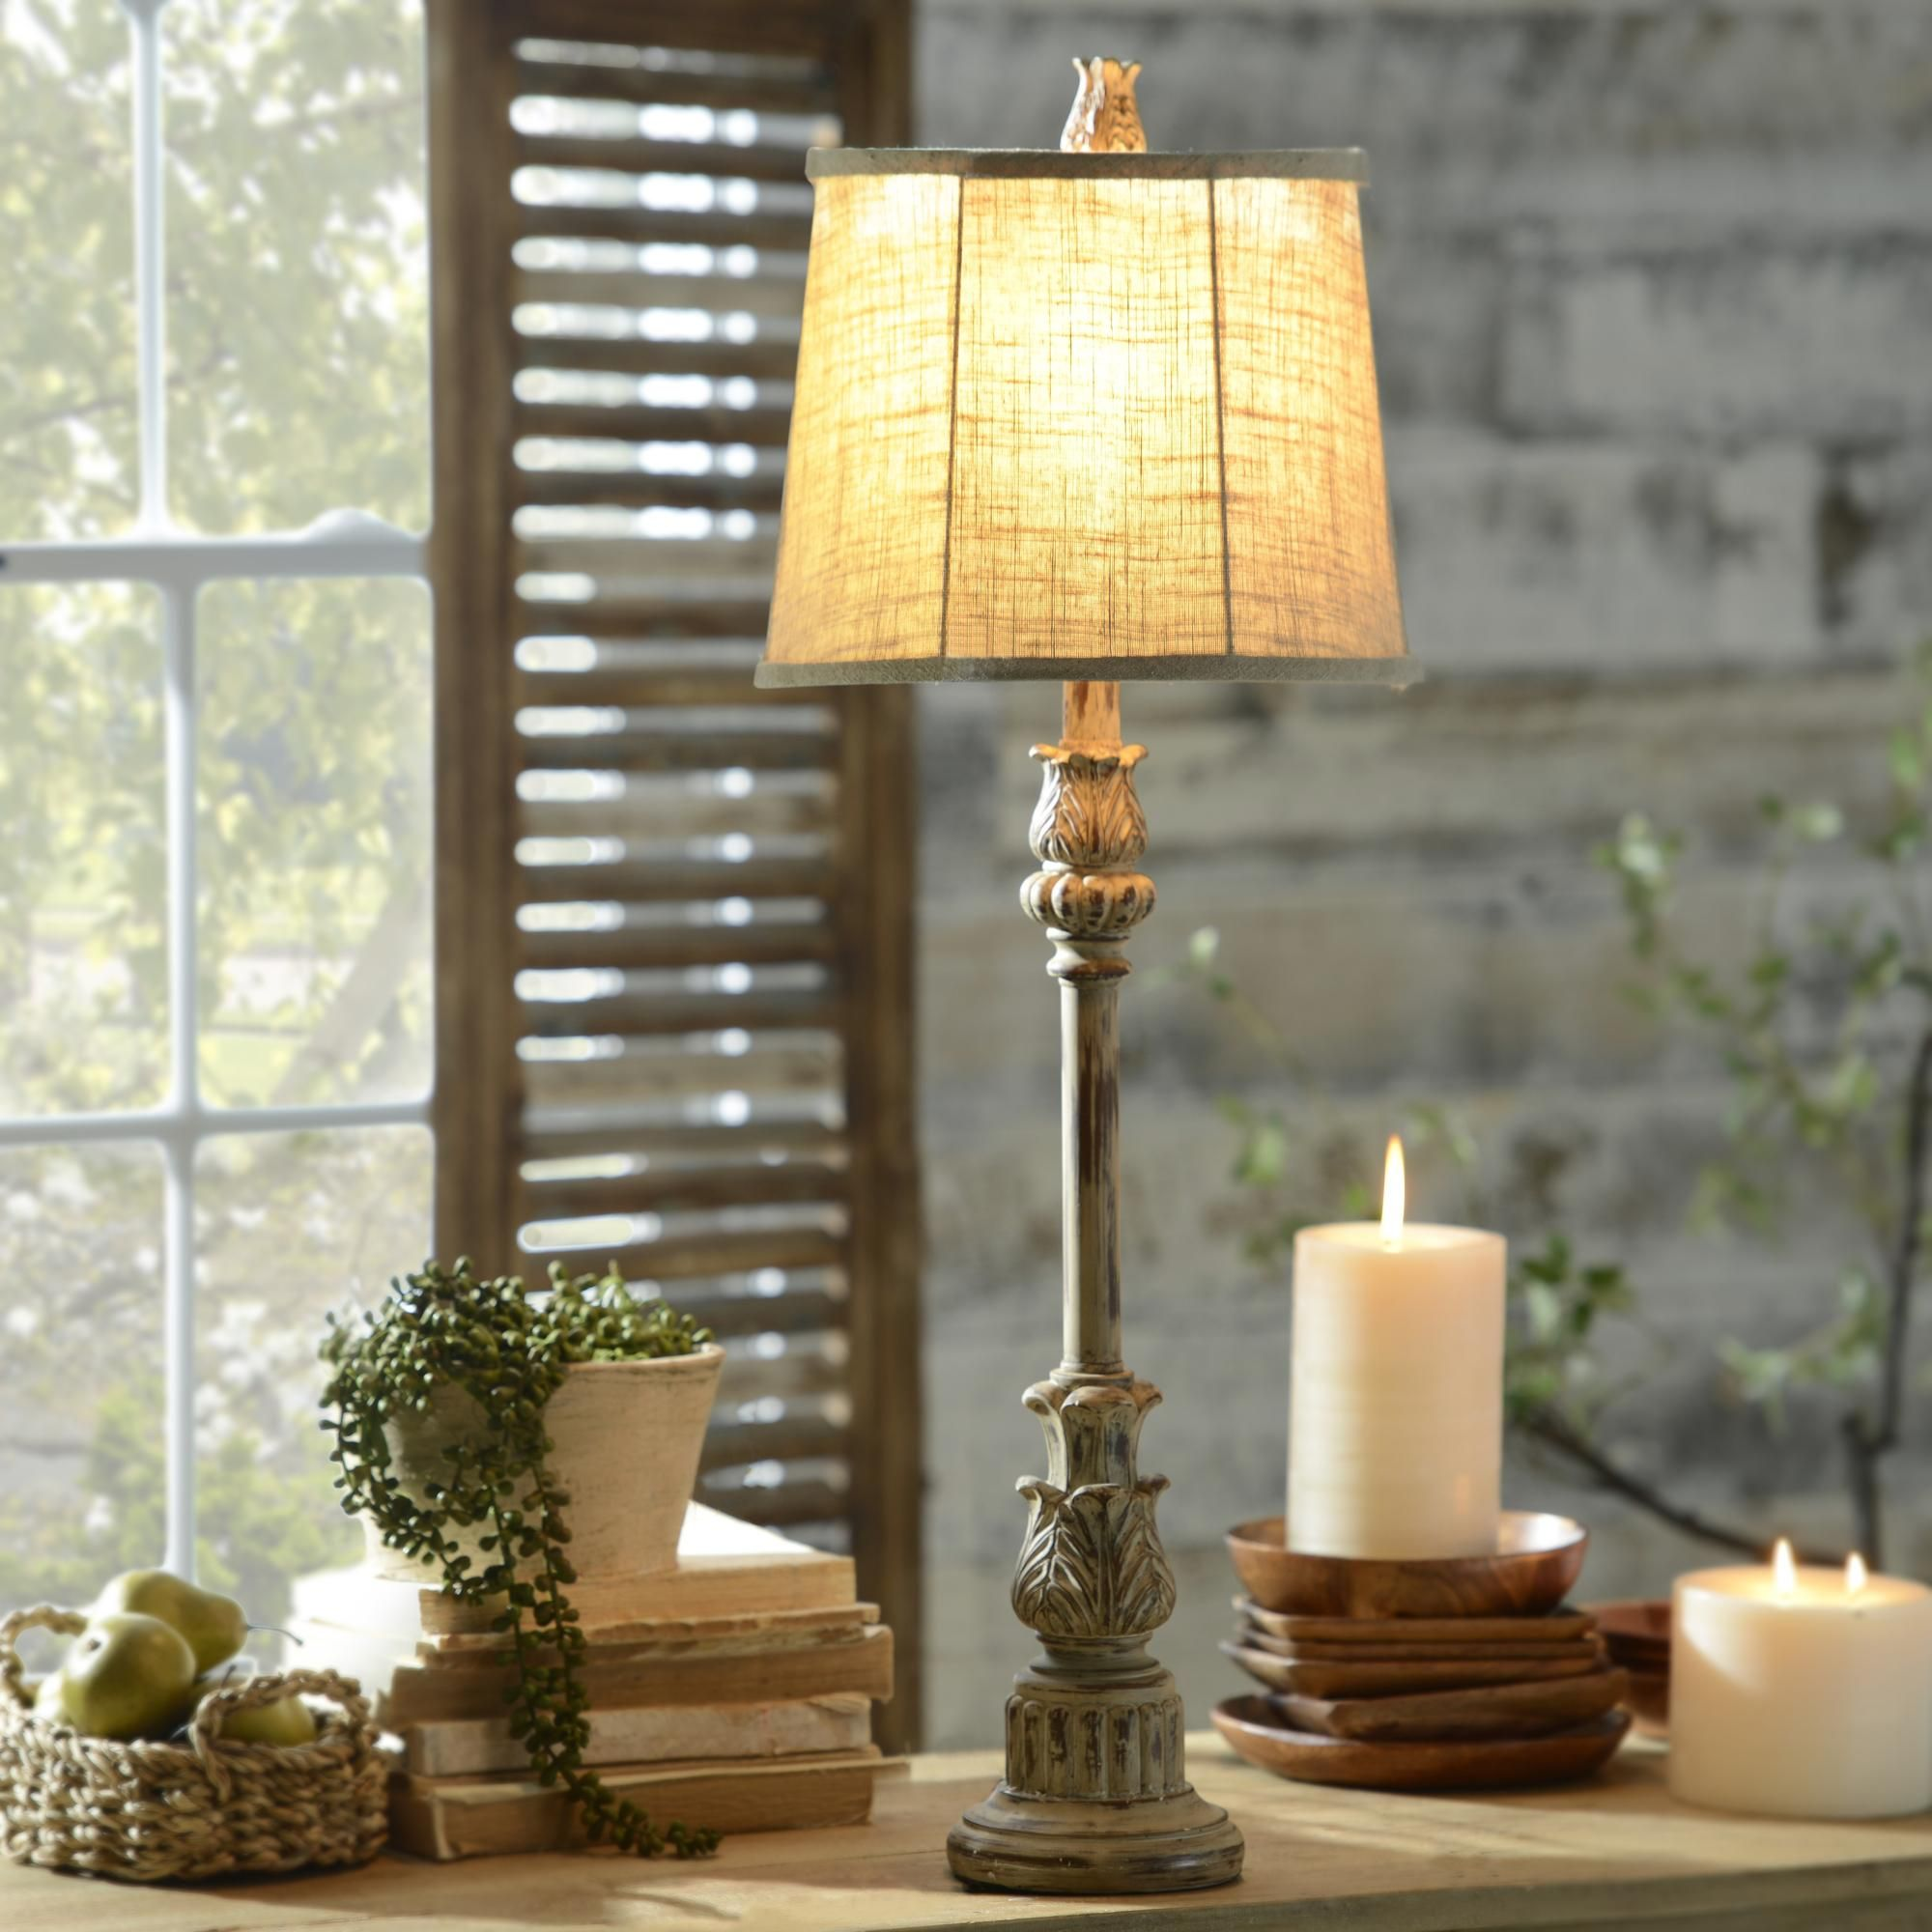 With Long Narrow Necks And Small Shades Buffet Lamps Are Use To Focus Light